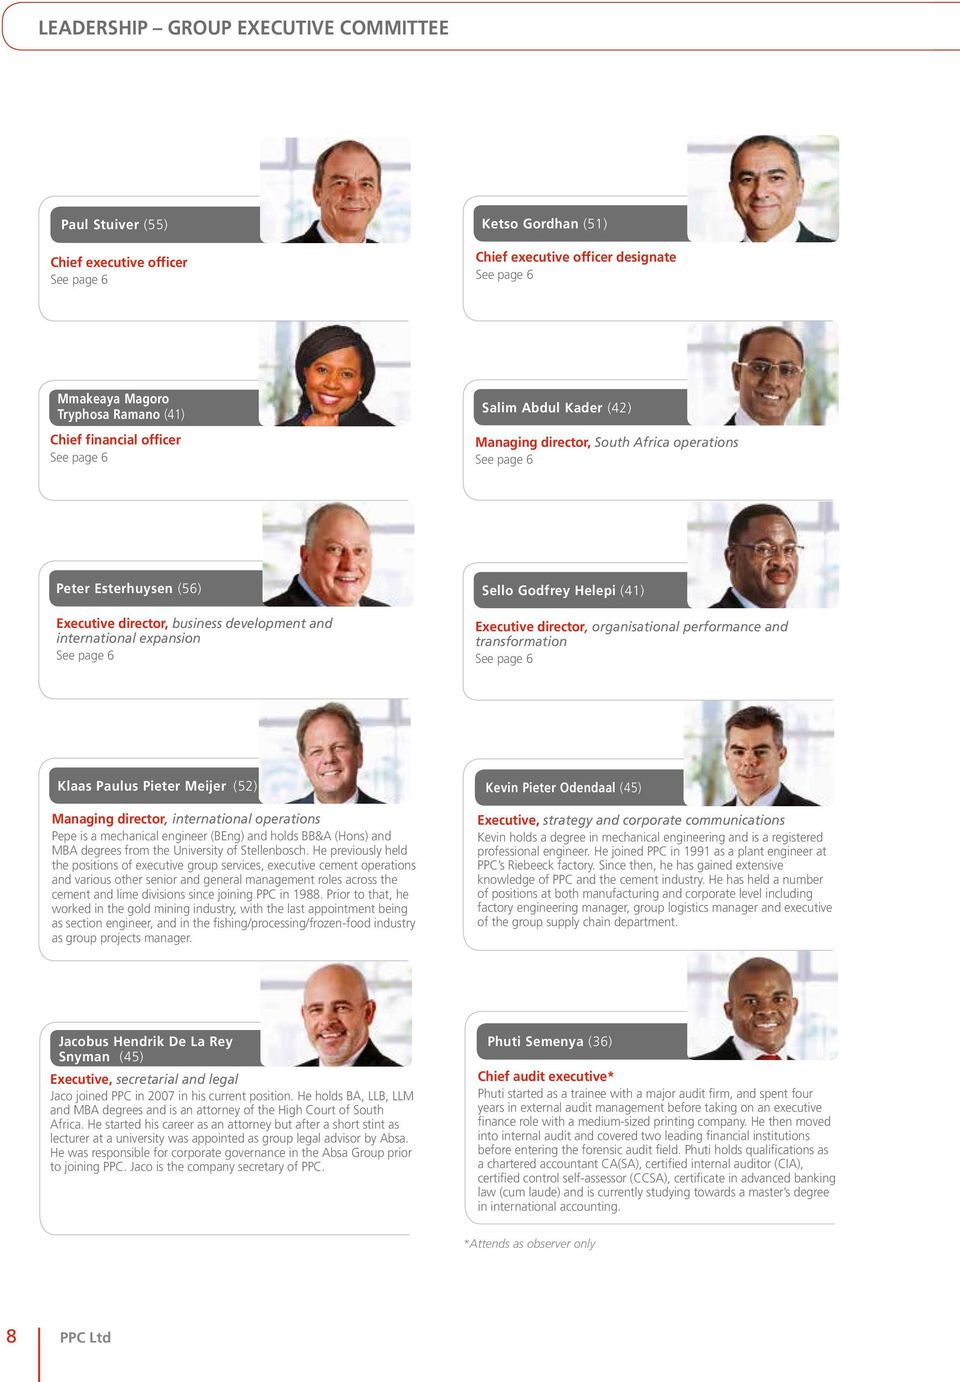 See page 6 Sello Godfrey Helepi (41) Executive director, organisational performance and transformation See page 6 Klaas Paulus Pieter Meijer (52) Managing director, international operations Pepe is a